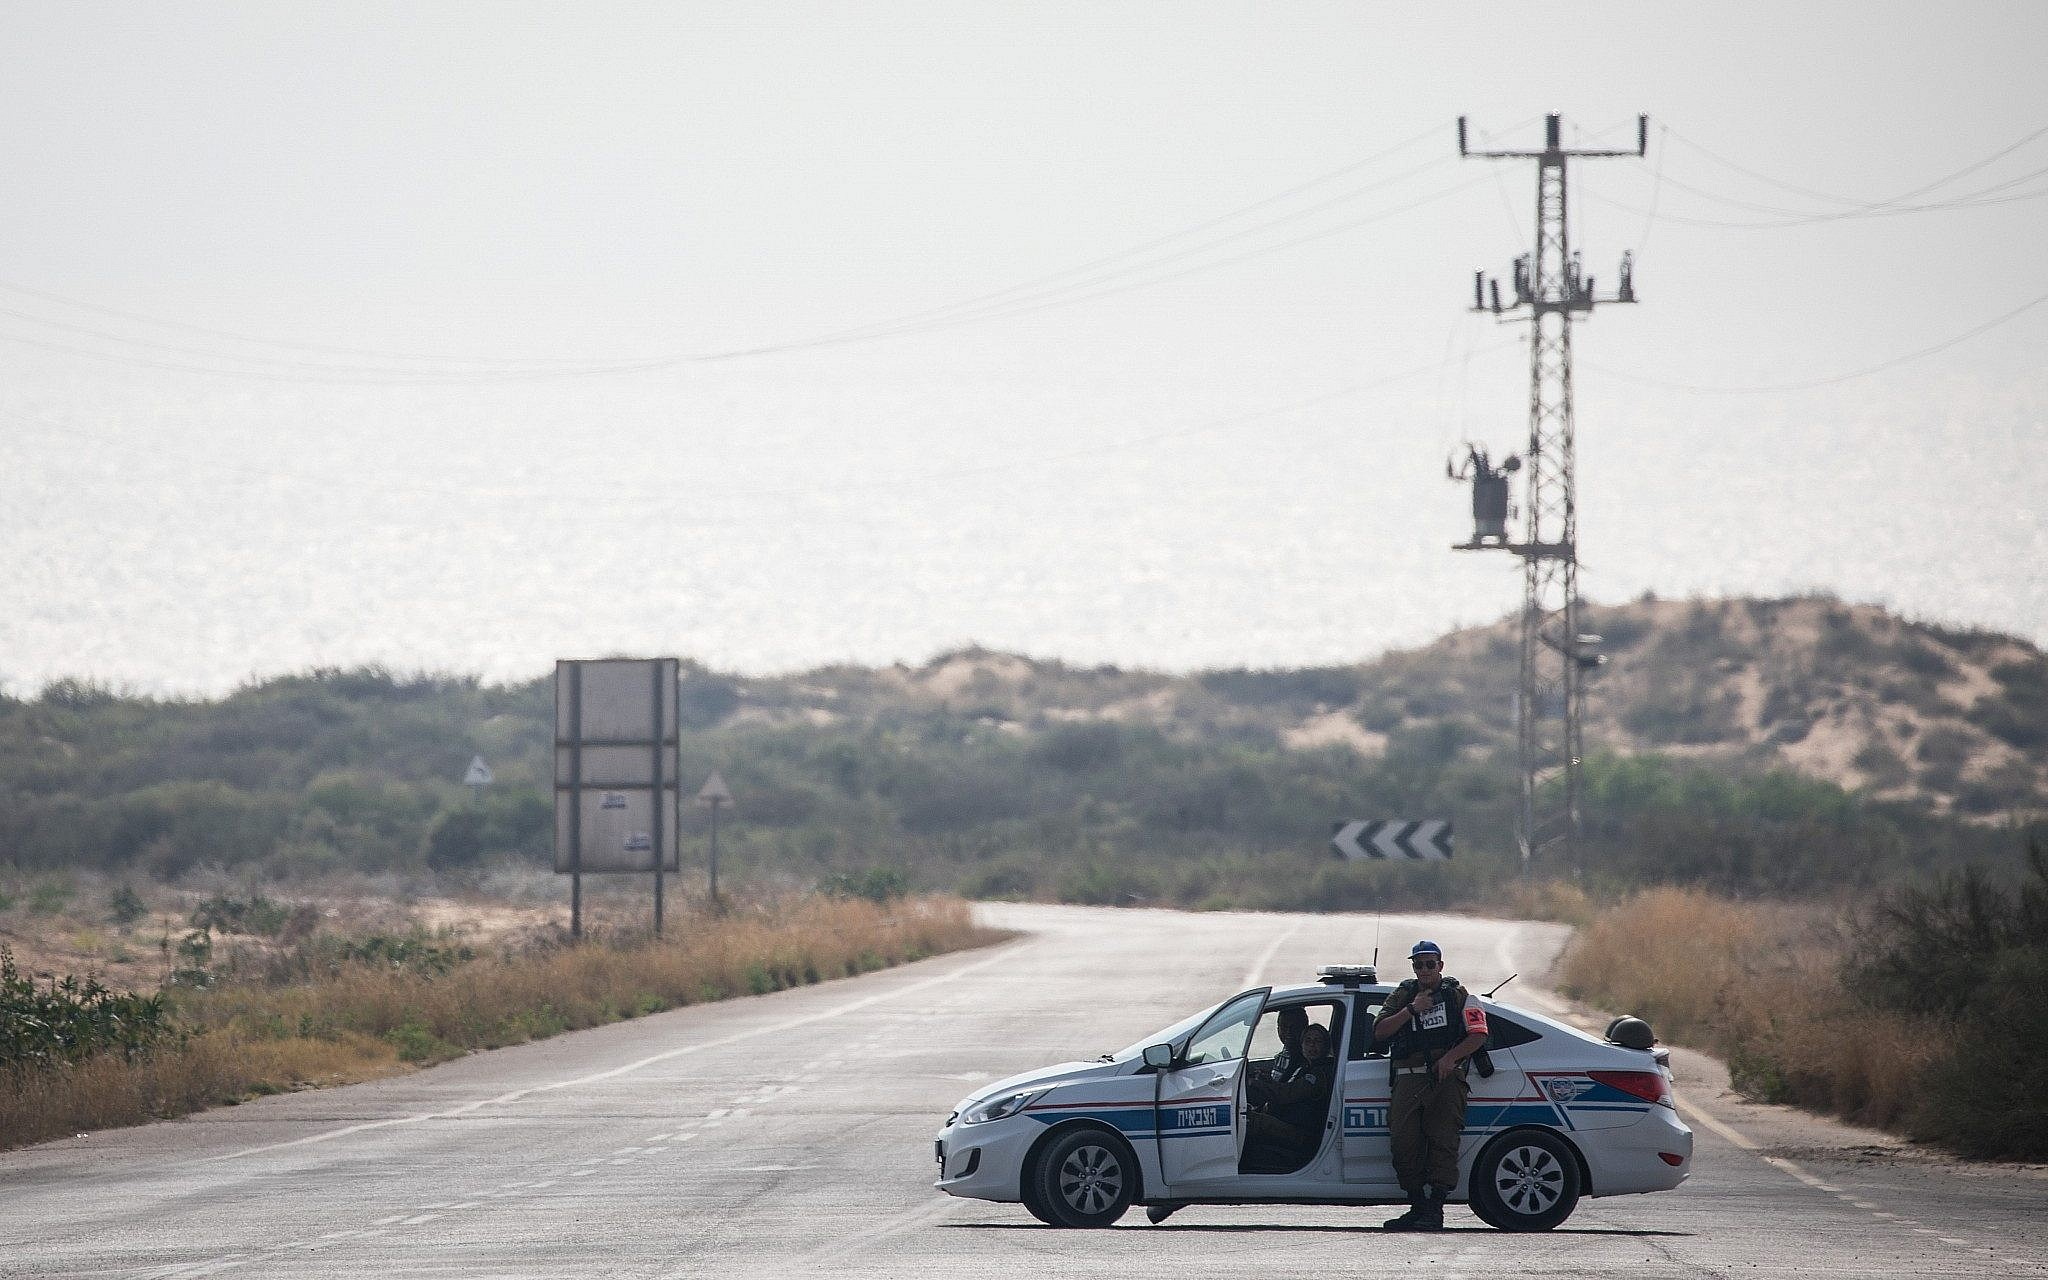 United Nations appeals for calm as hostilities in Israel, Gaza threaten ceasefire efforts